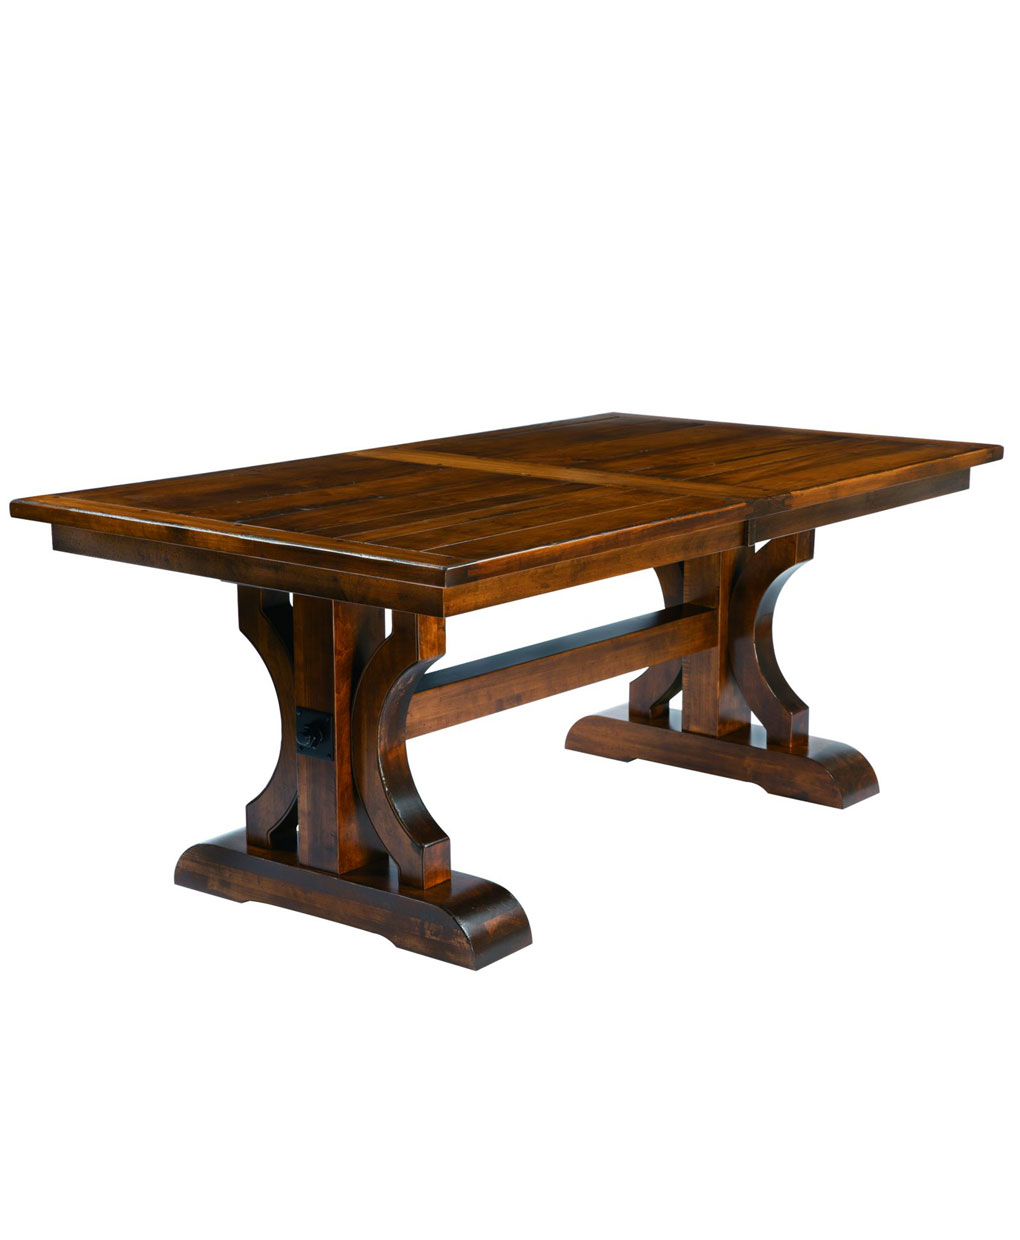 Barstow Dining Table - Amish Direct Furniture